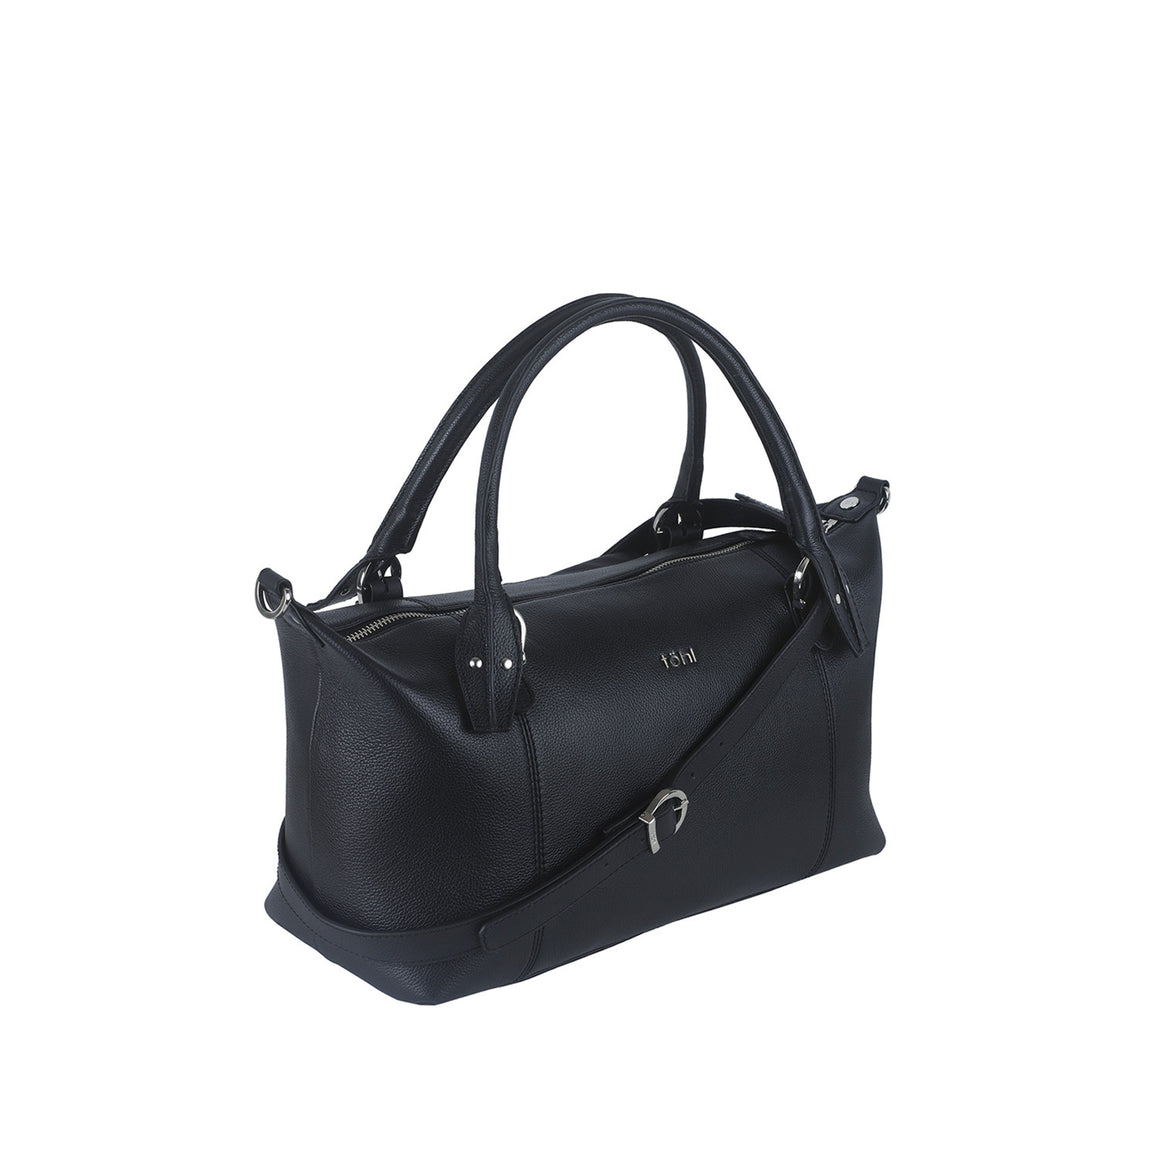 SB 0011 - TOHL MORRIS WOMEN'S TOTE BAG - CHARCOAL BLACK